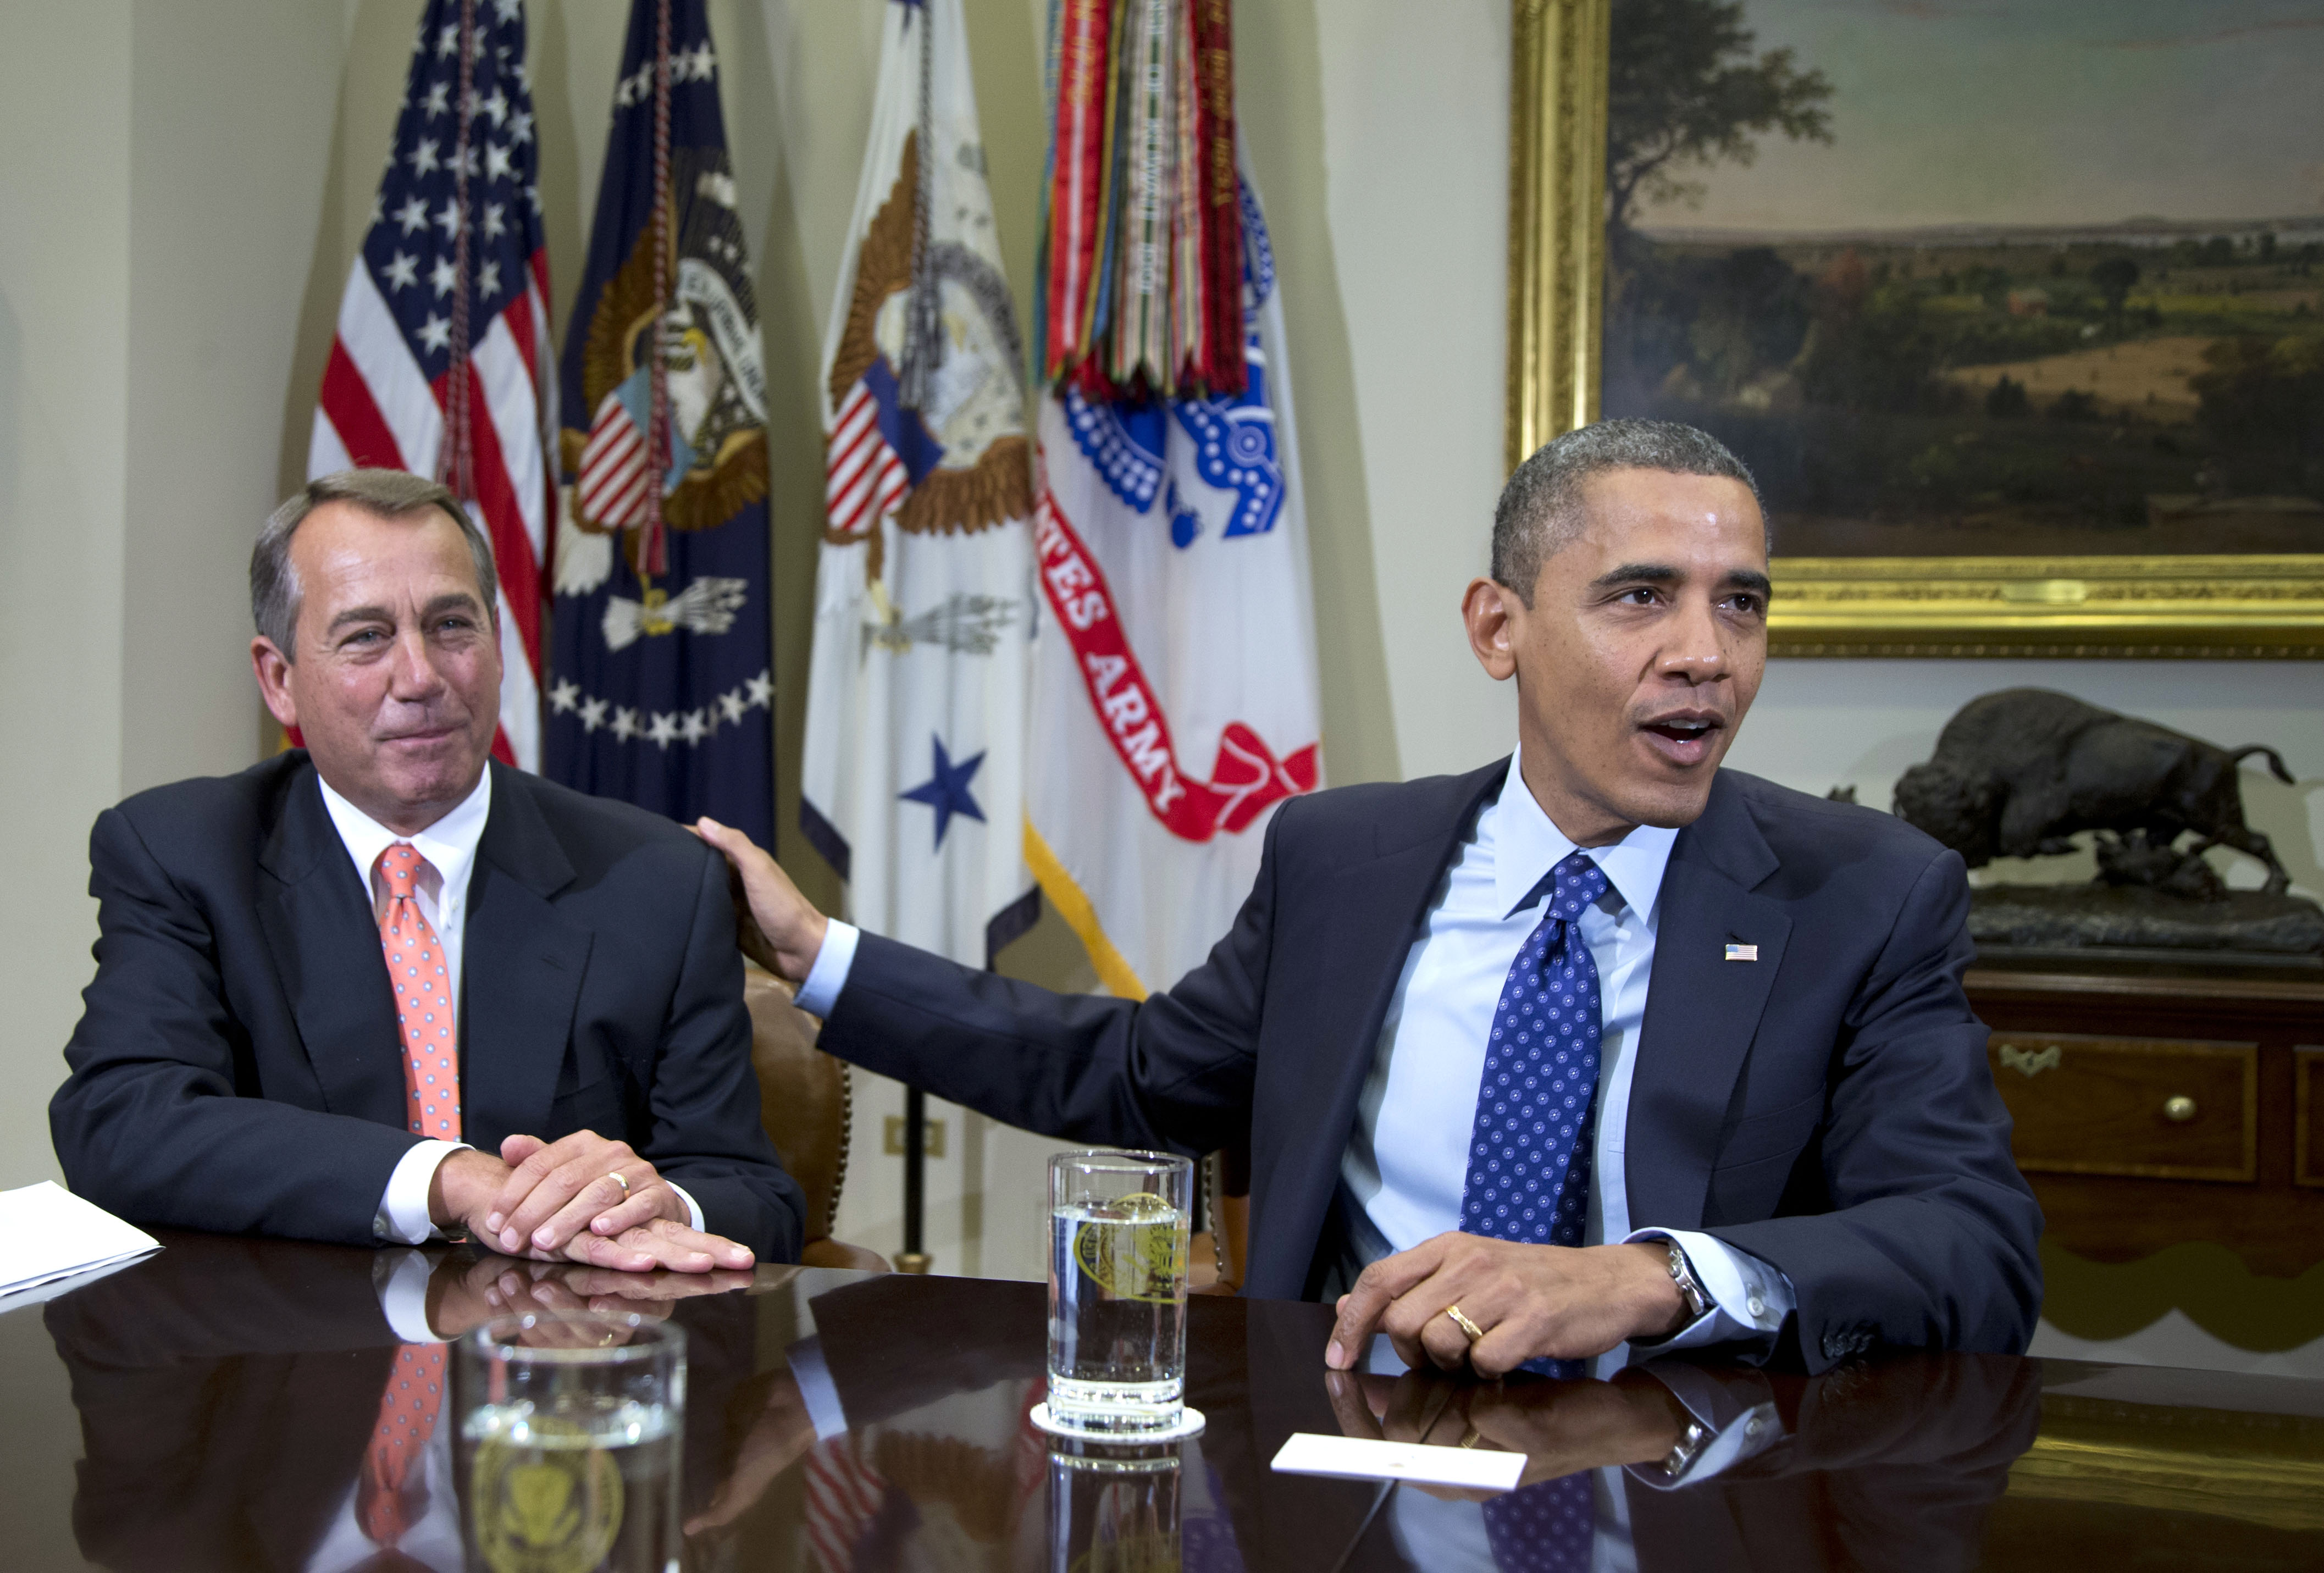 The root of growing animosity between the parties of House Speaker John Boehner (left) and President Barack Obama may be long in the making, scholars say. | AP